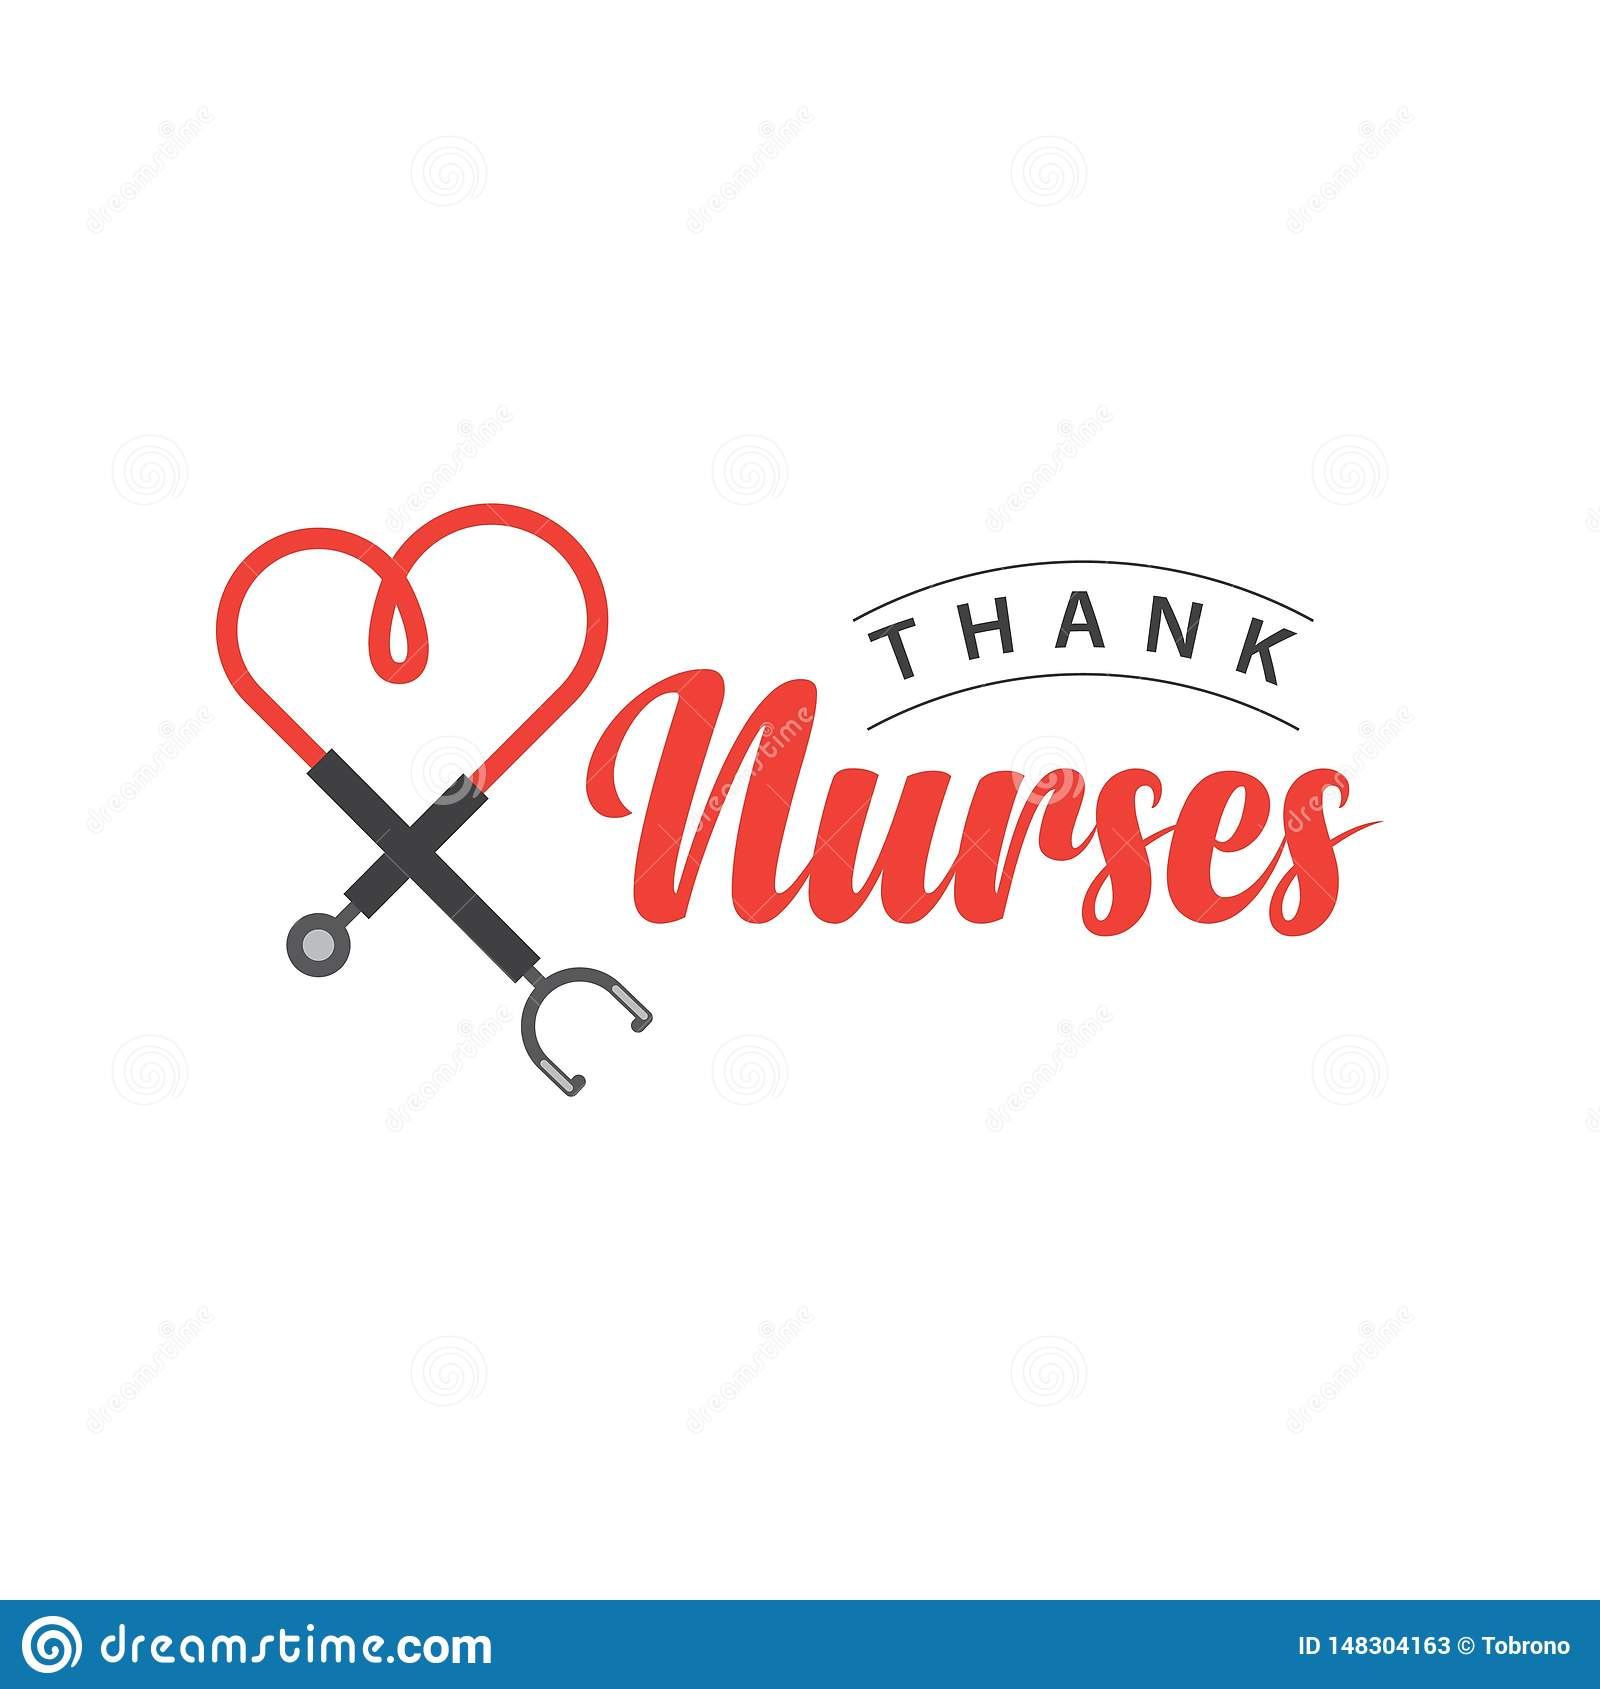 Thank Nurses Vector Template Design Illustration